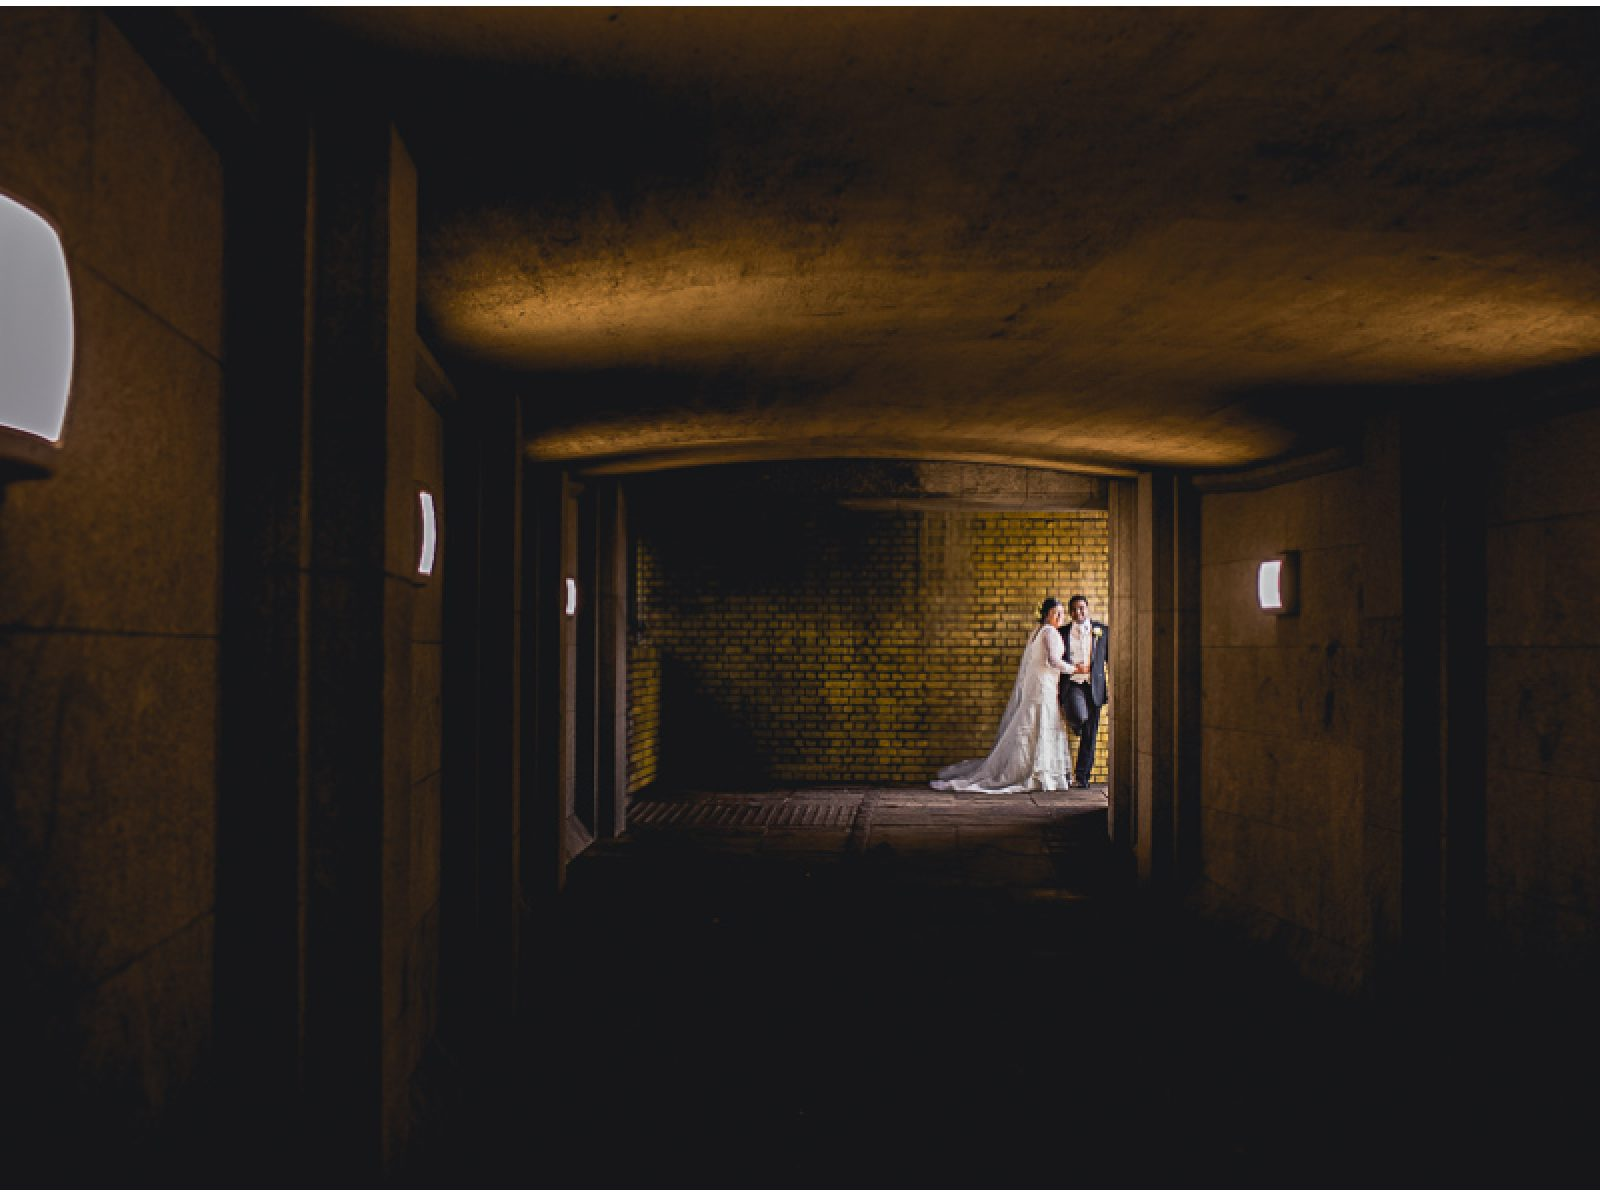 351 1600x1200 - Darshani and Anthony - wedding photographer in London